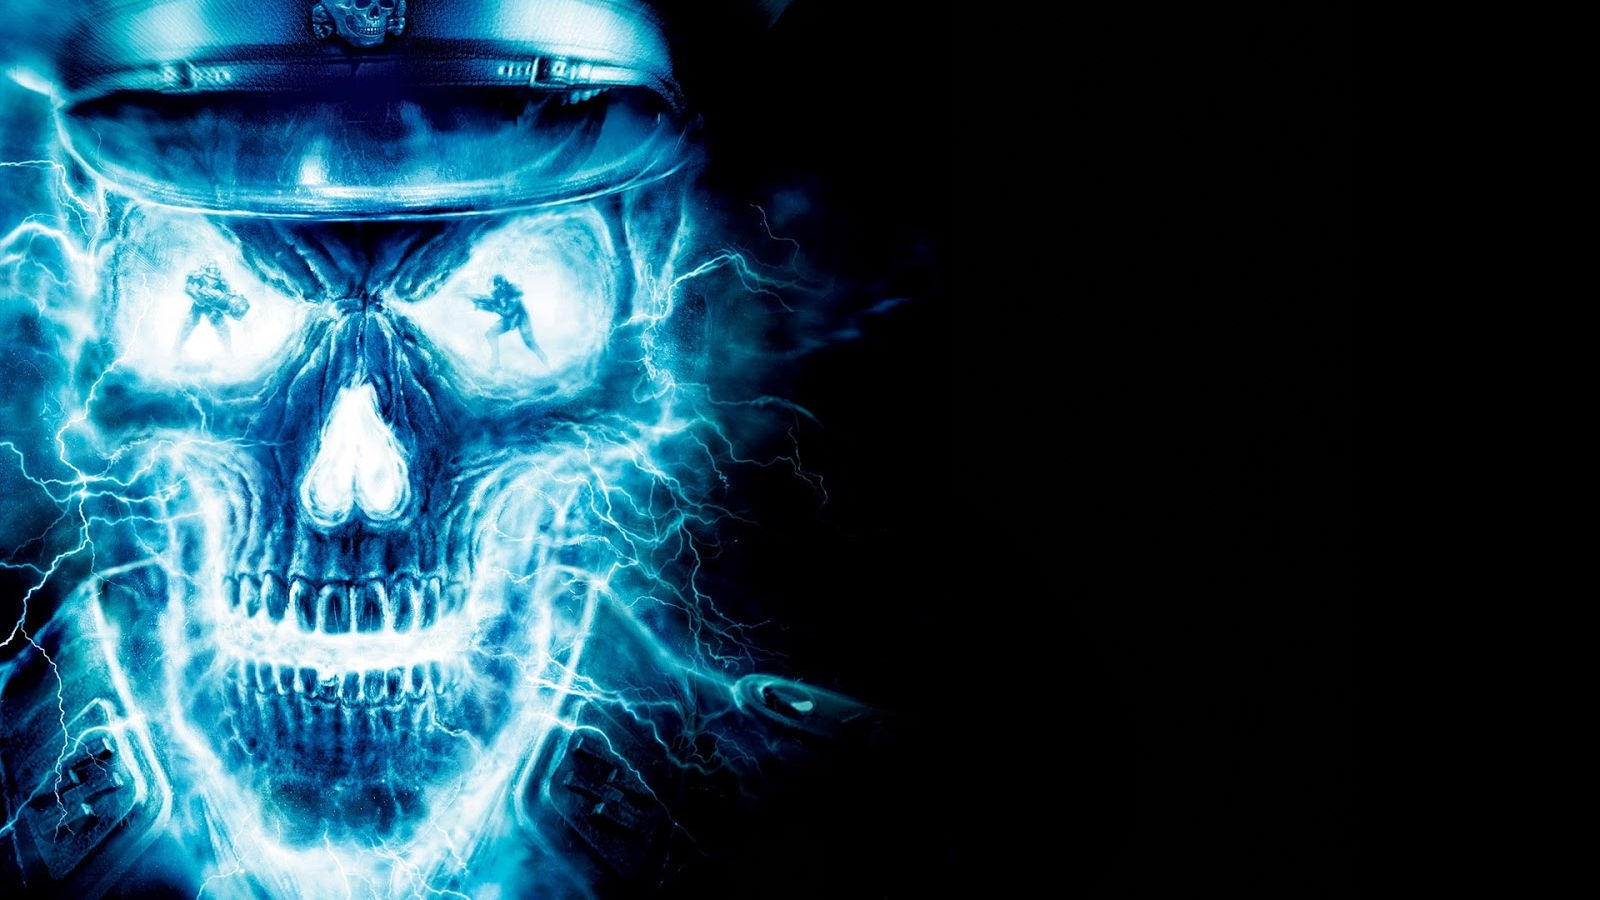 Free download Skull Wallpapers Download